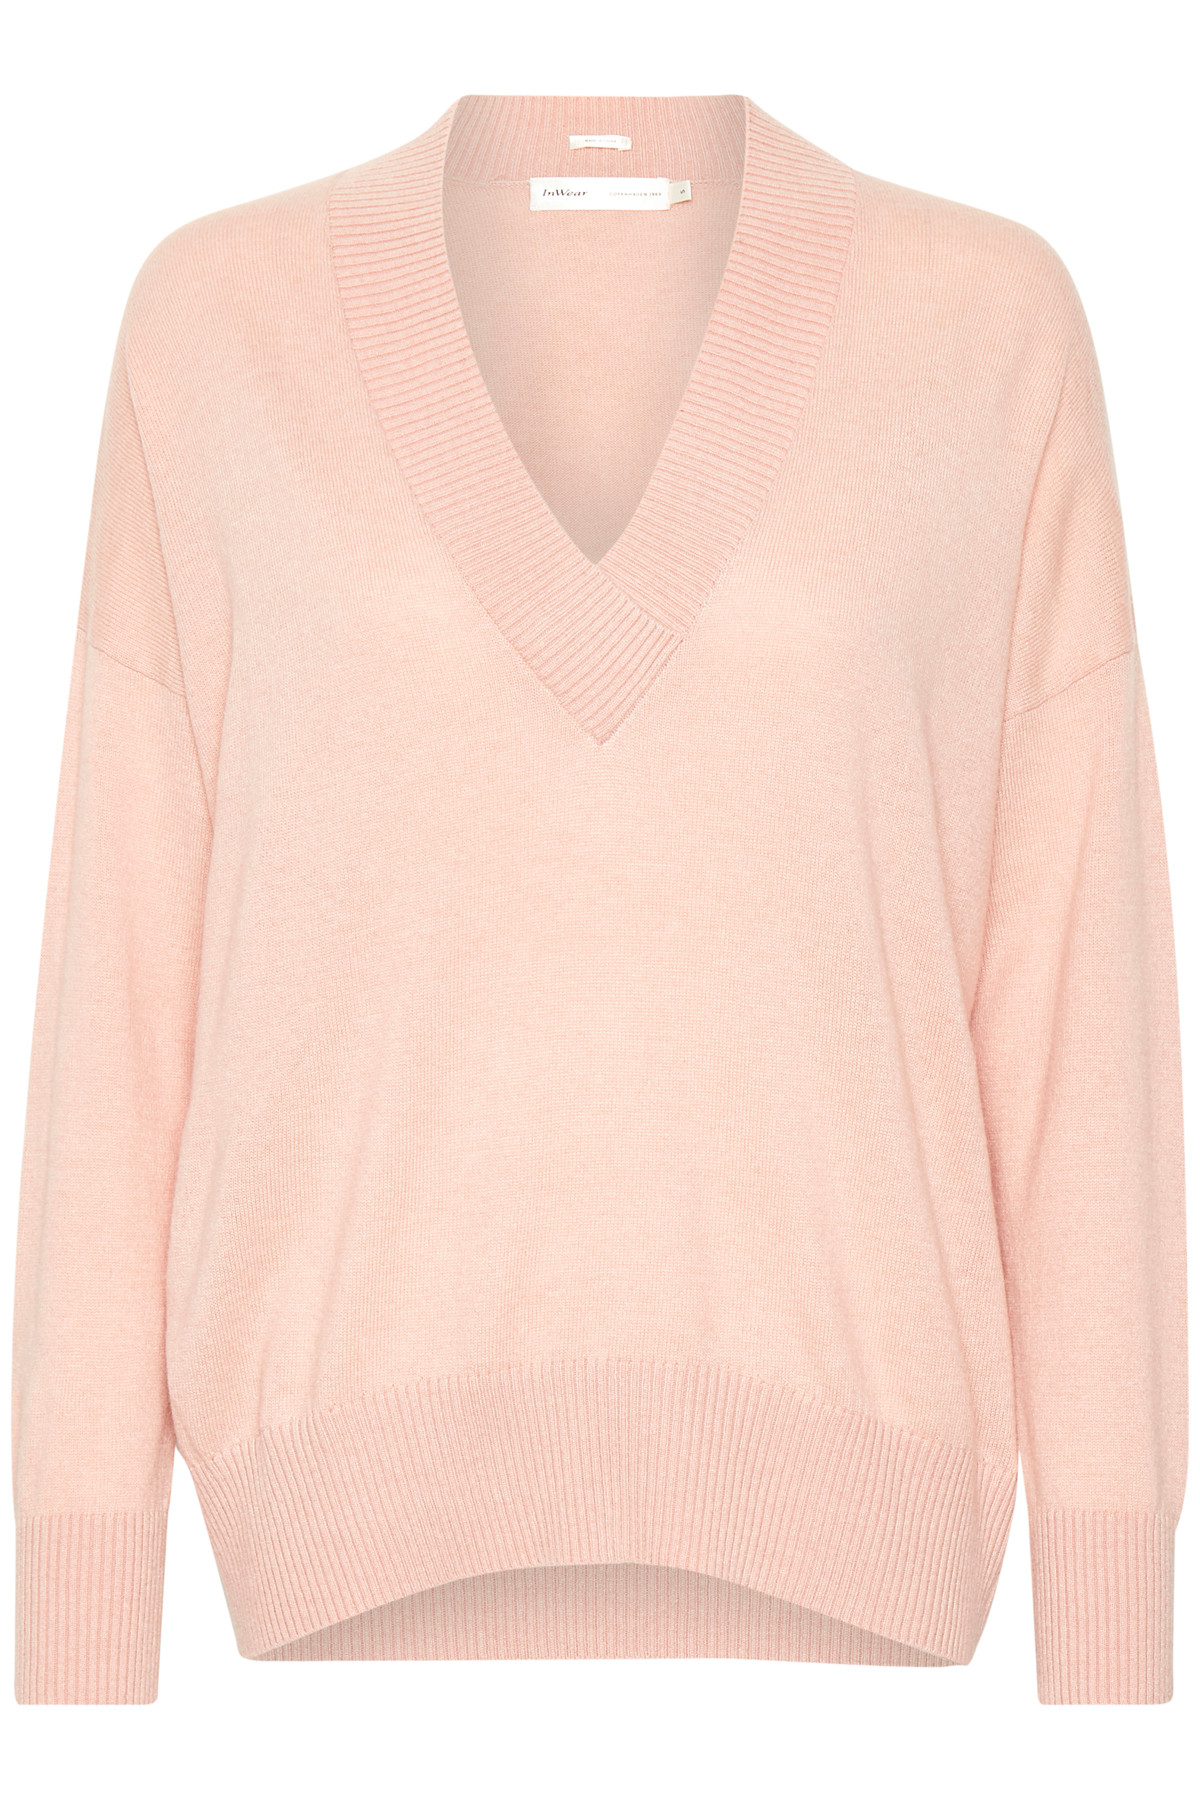 Image of   InWear RUMI V-NECK STRIK 30103998 R (Rose Dust 10516, L)